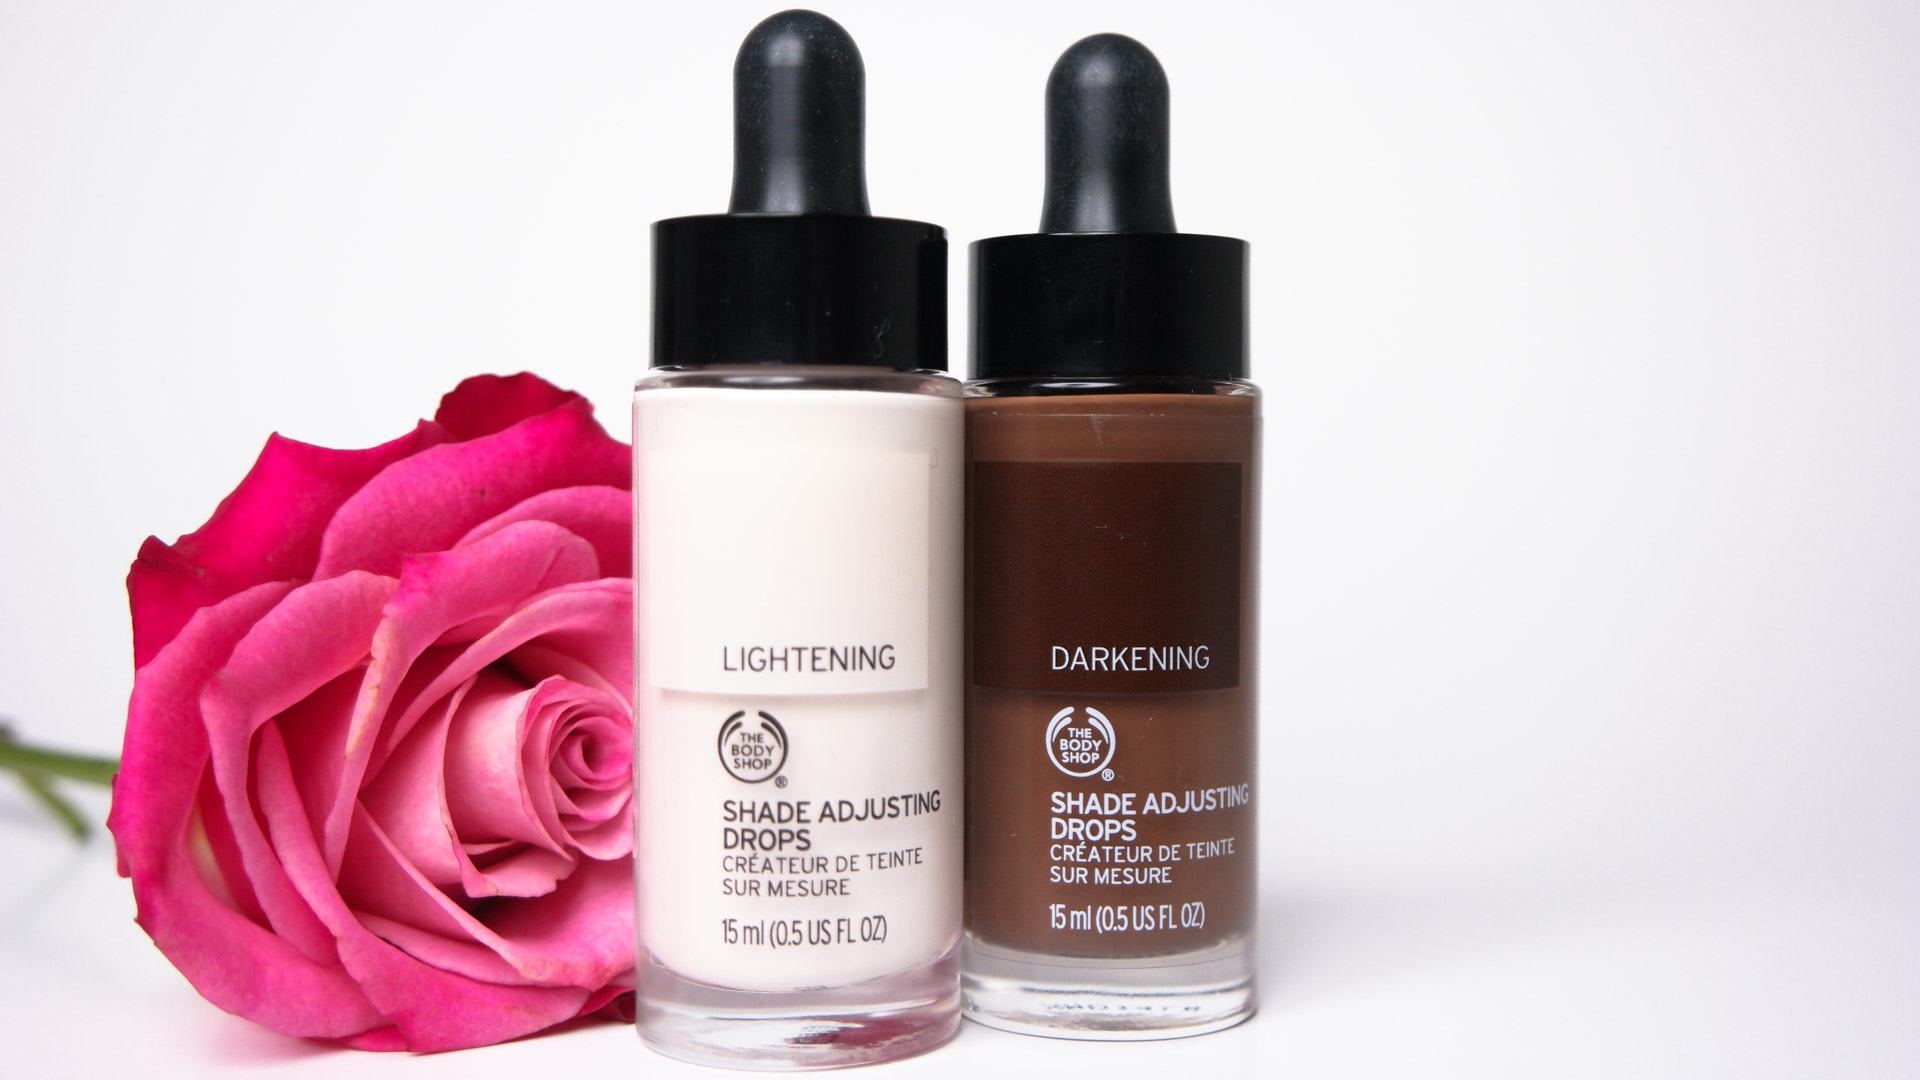 The Body Shop Shade Adjusting Drops Demo